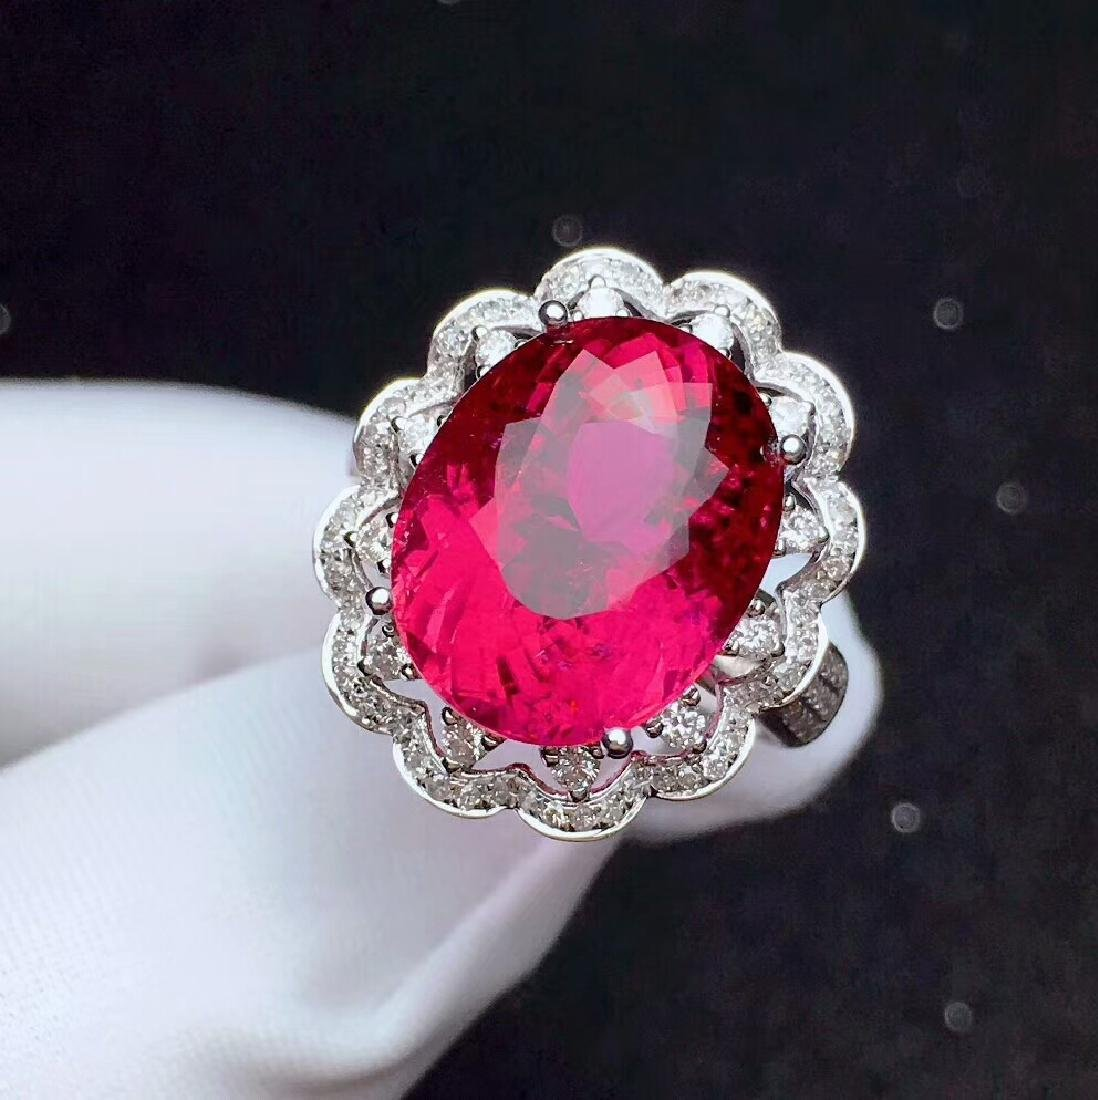 9.8ct Tourmaline Ring in 18kt White Gold - 3